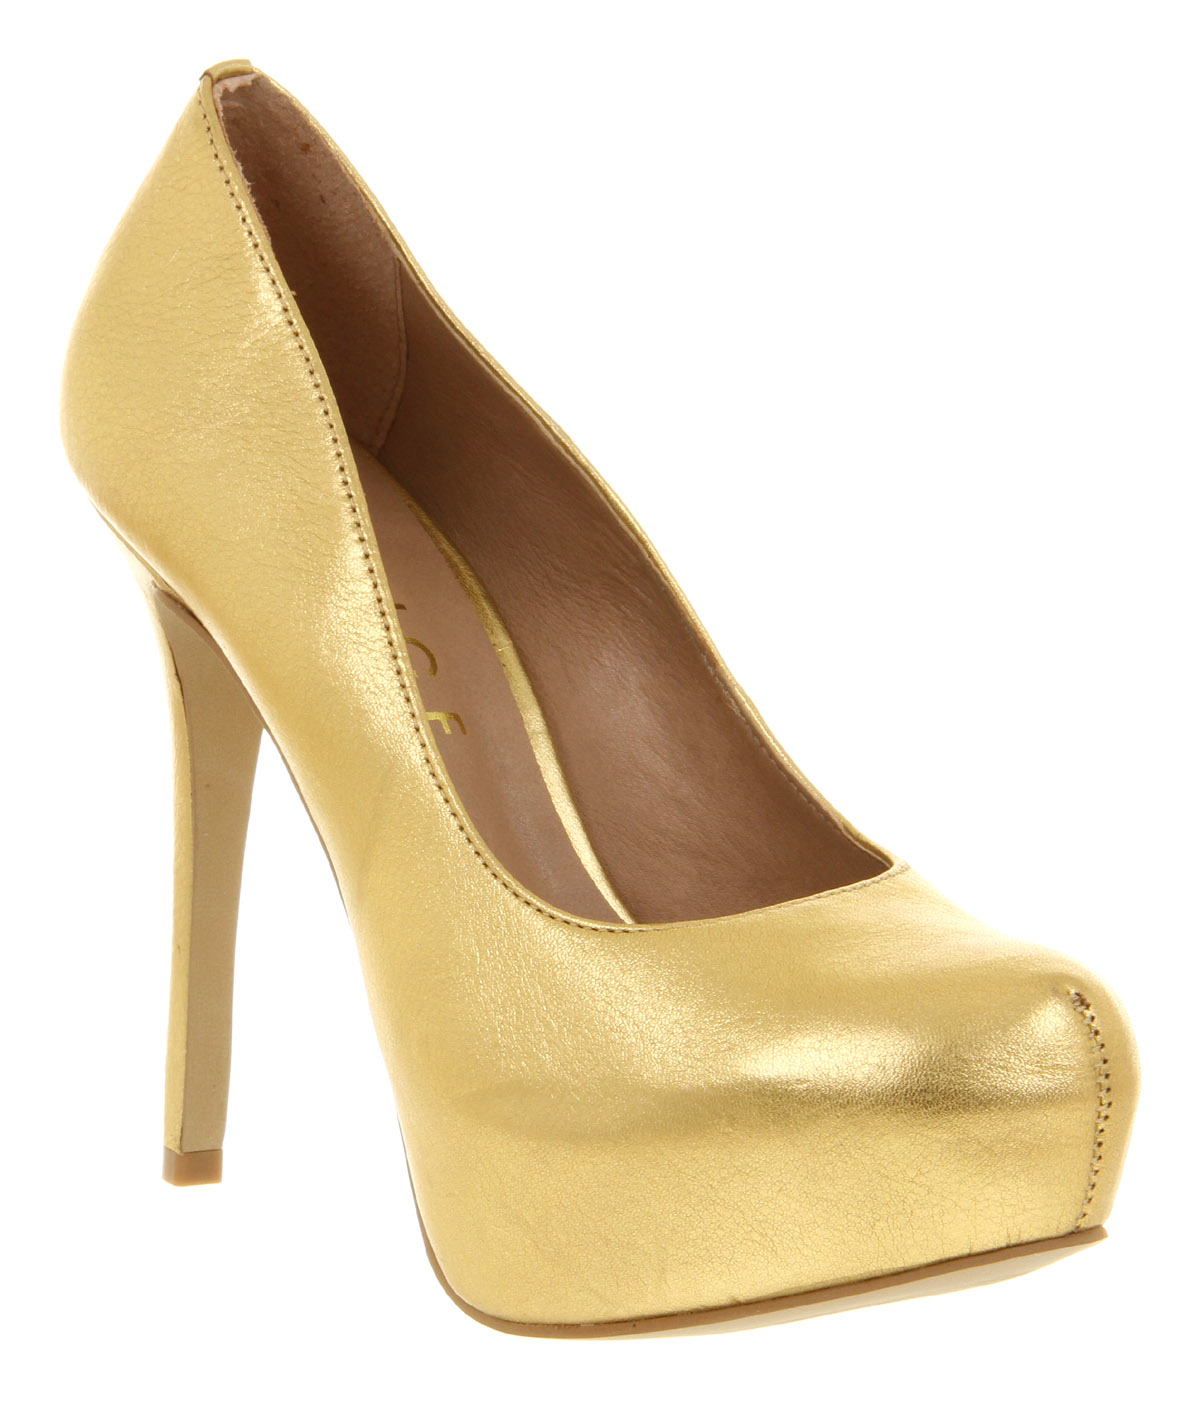 Womens-Office-After-All-Gold-Tumbled-Leaher-High-Heel-Court-Shoes